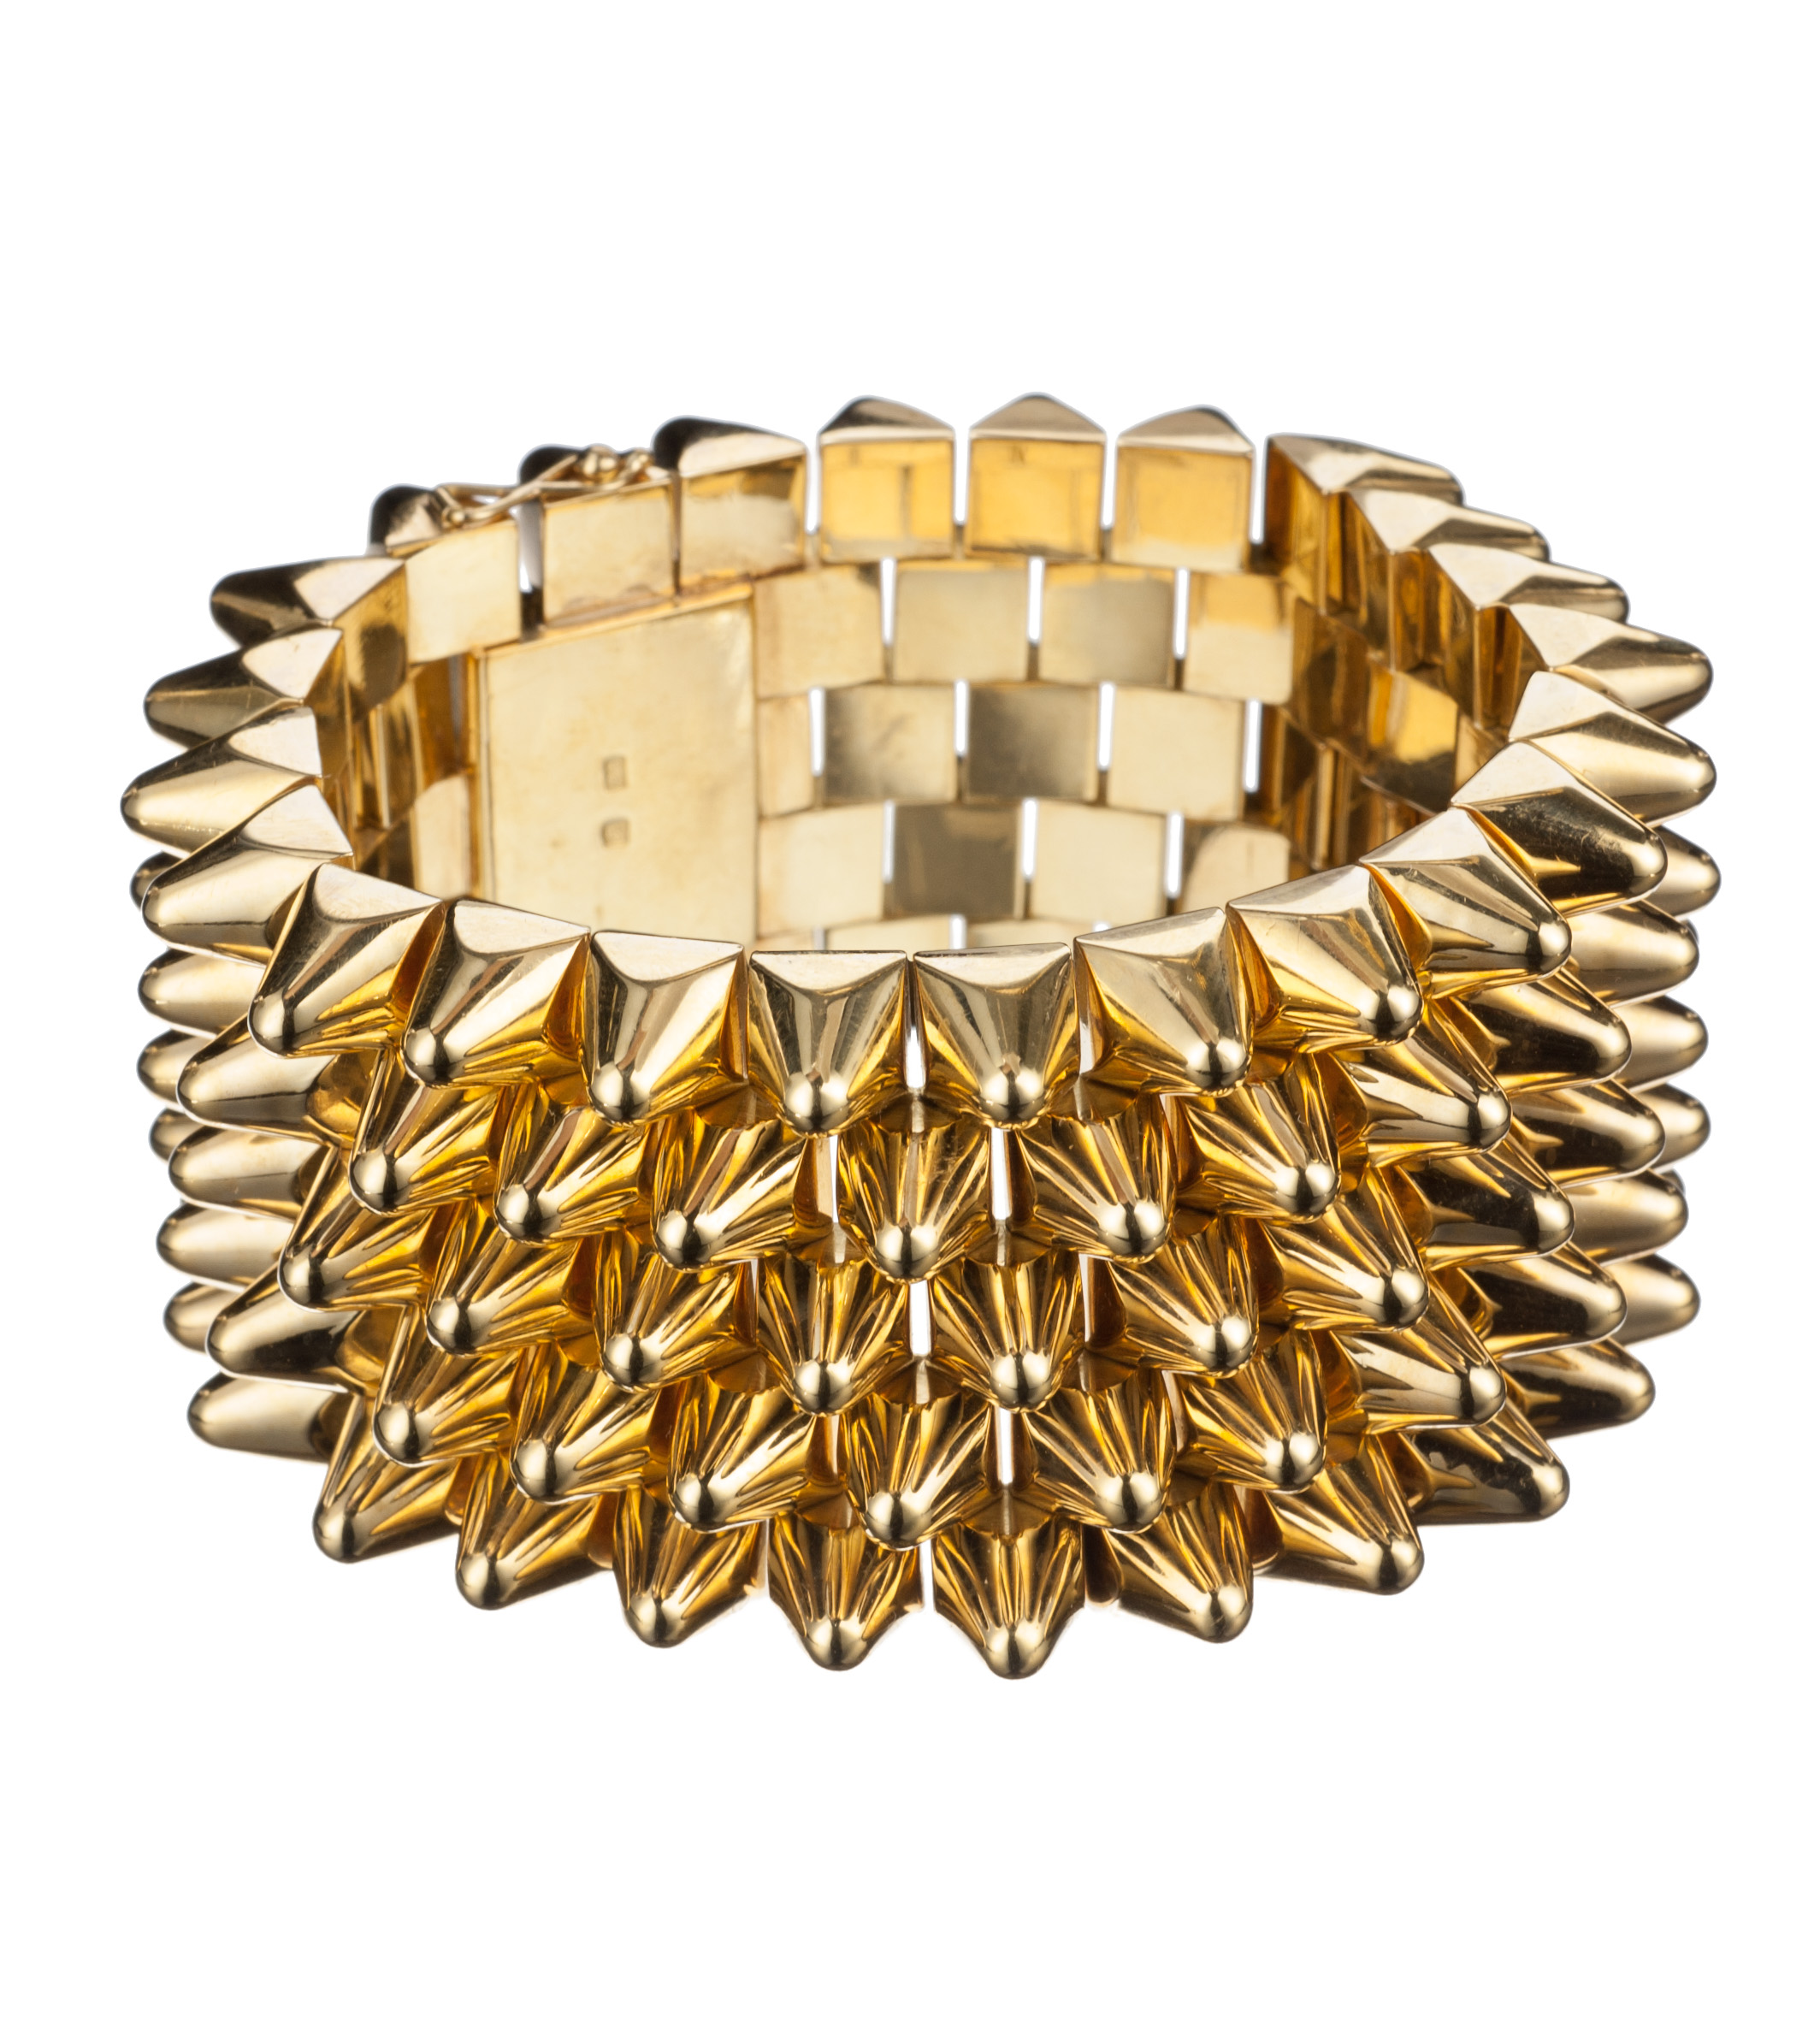 Studded 18-karat yellow gold bracelet